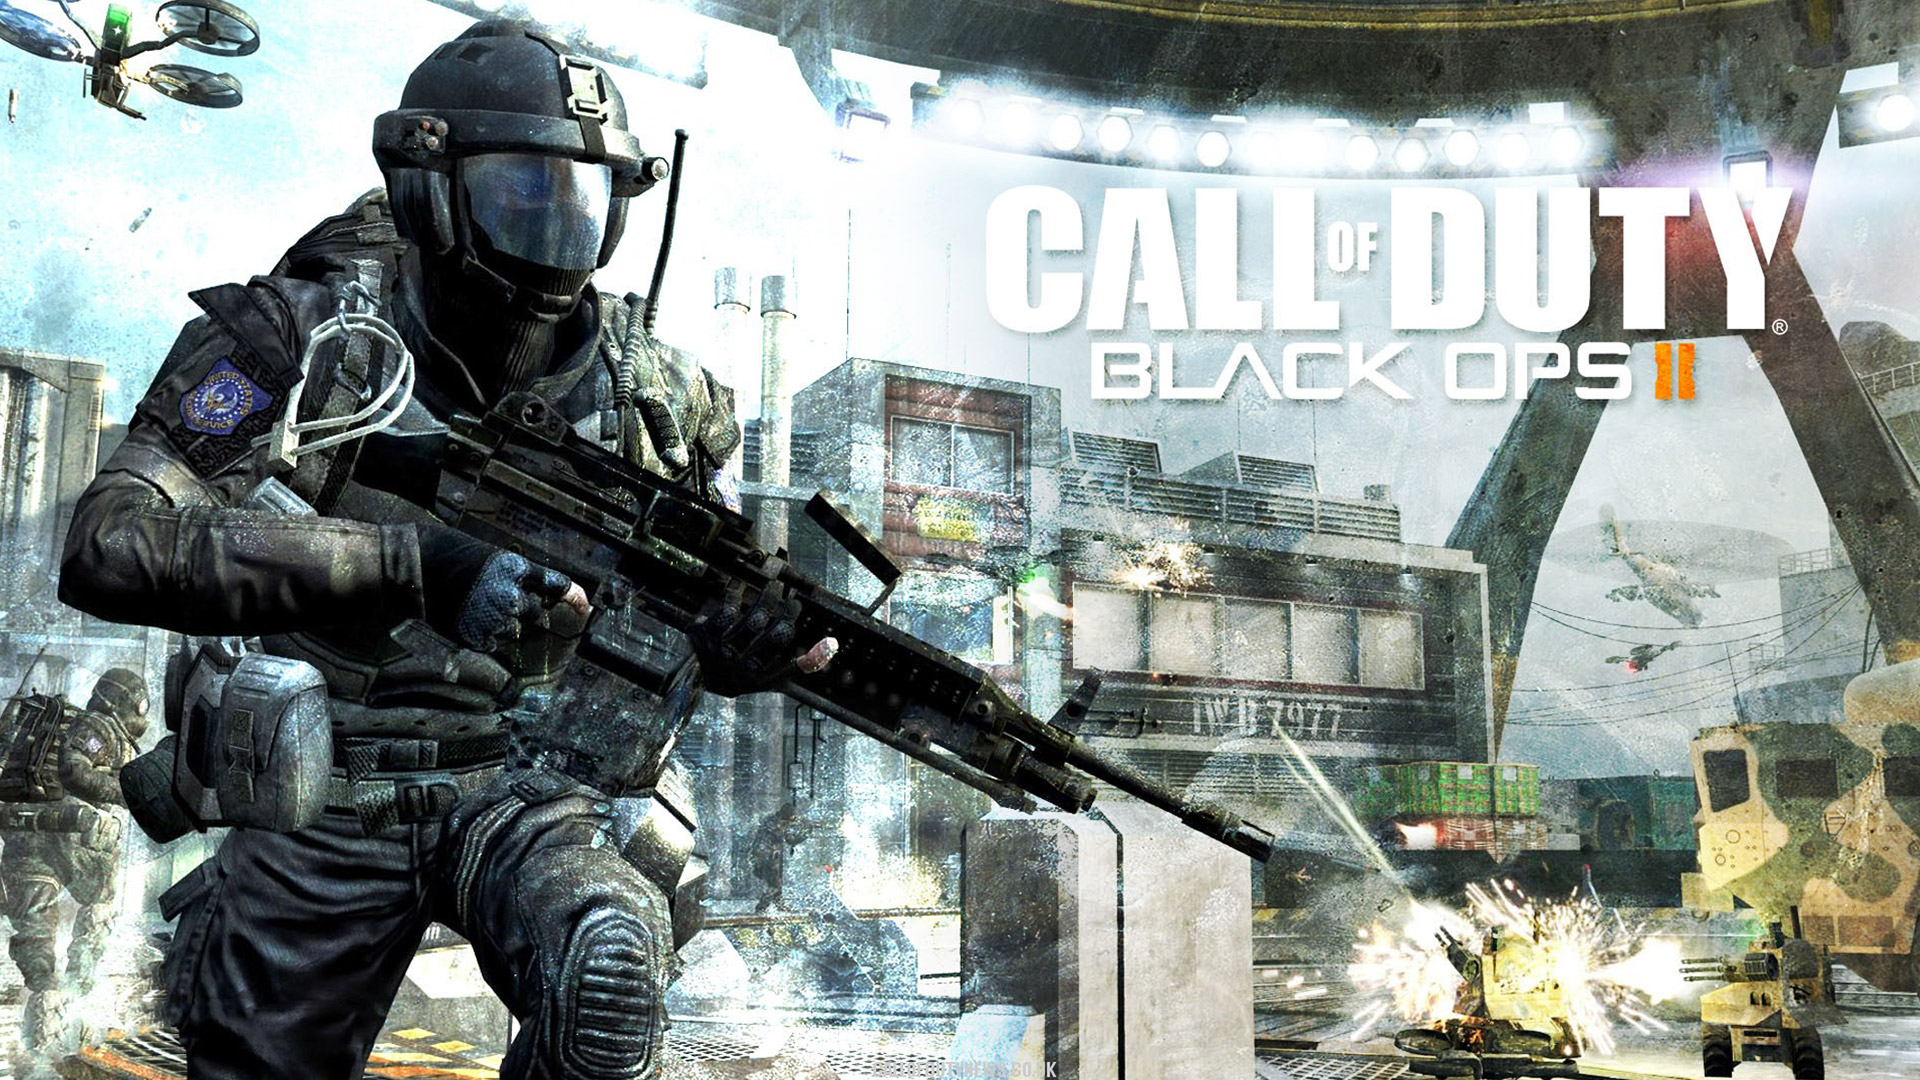 Call of Duty Black Ops 2 wallpaper 21